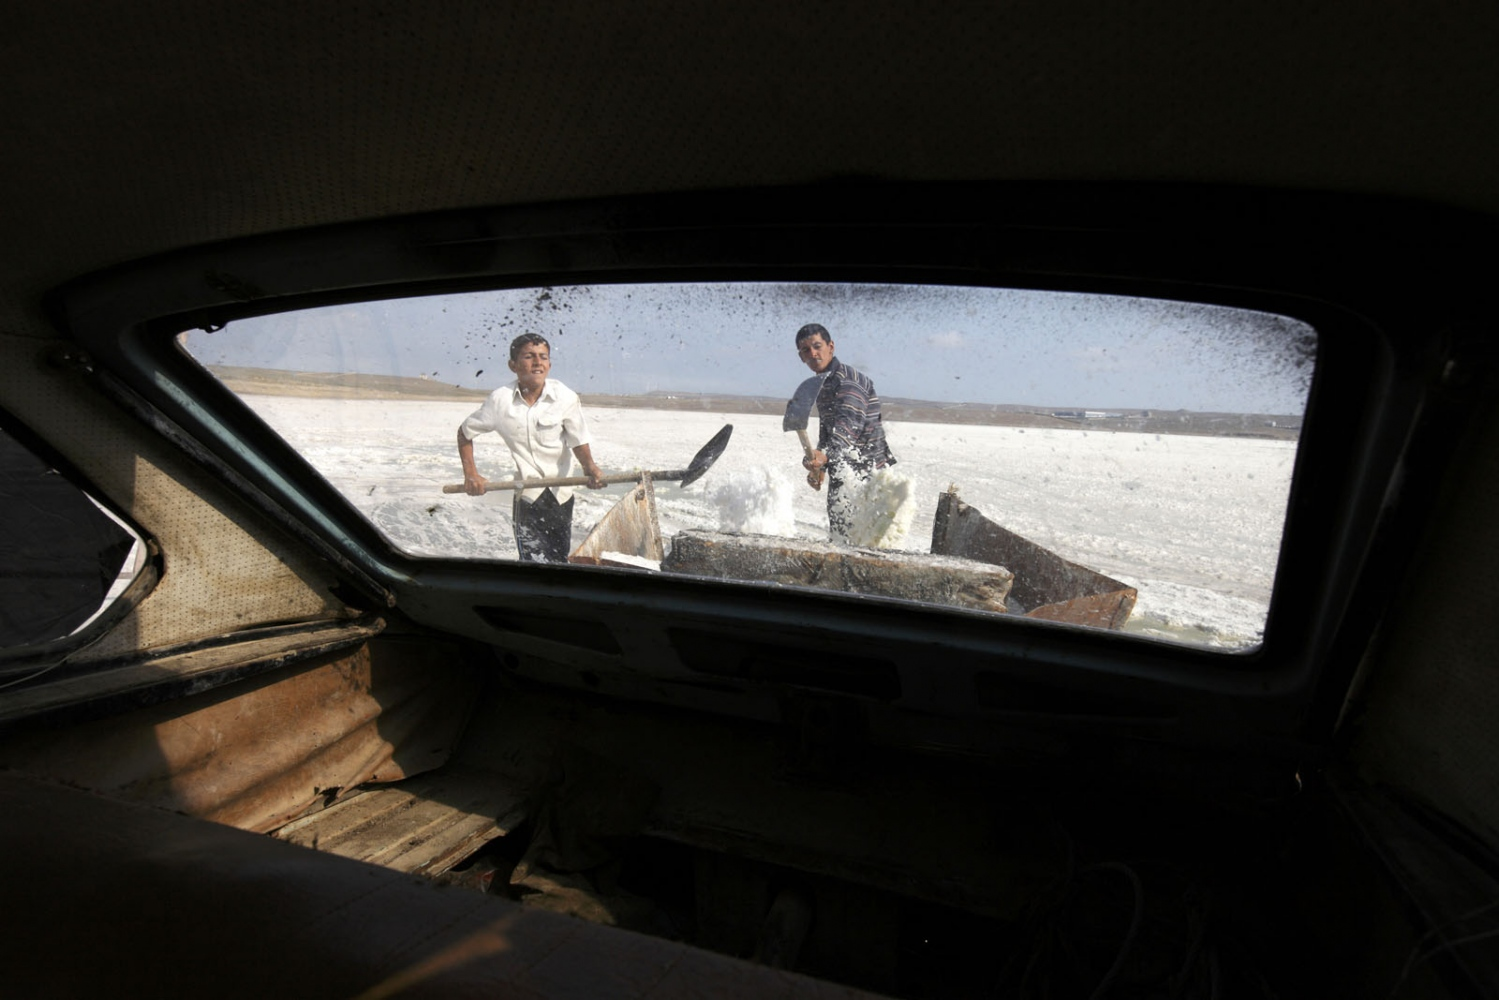 Two brothers load salt from Lake Binagadi in to a trailer attached to the back of a rusty Soviet-era car in Azerbaijan.